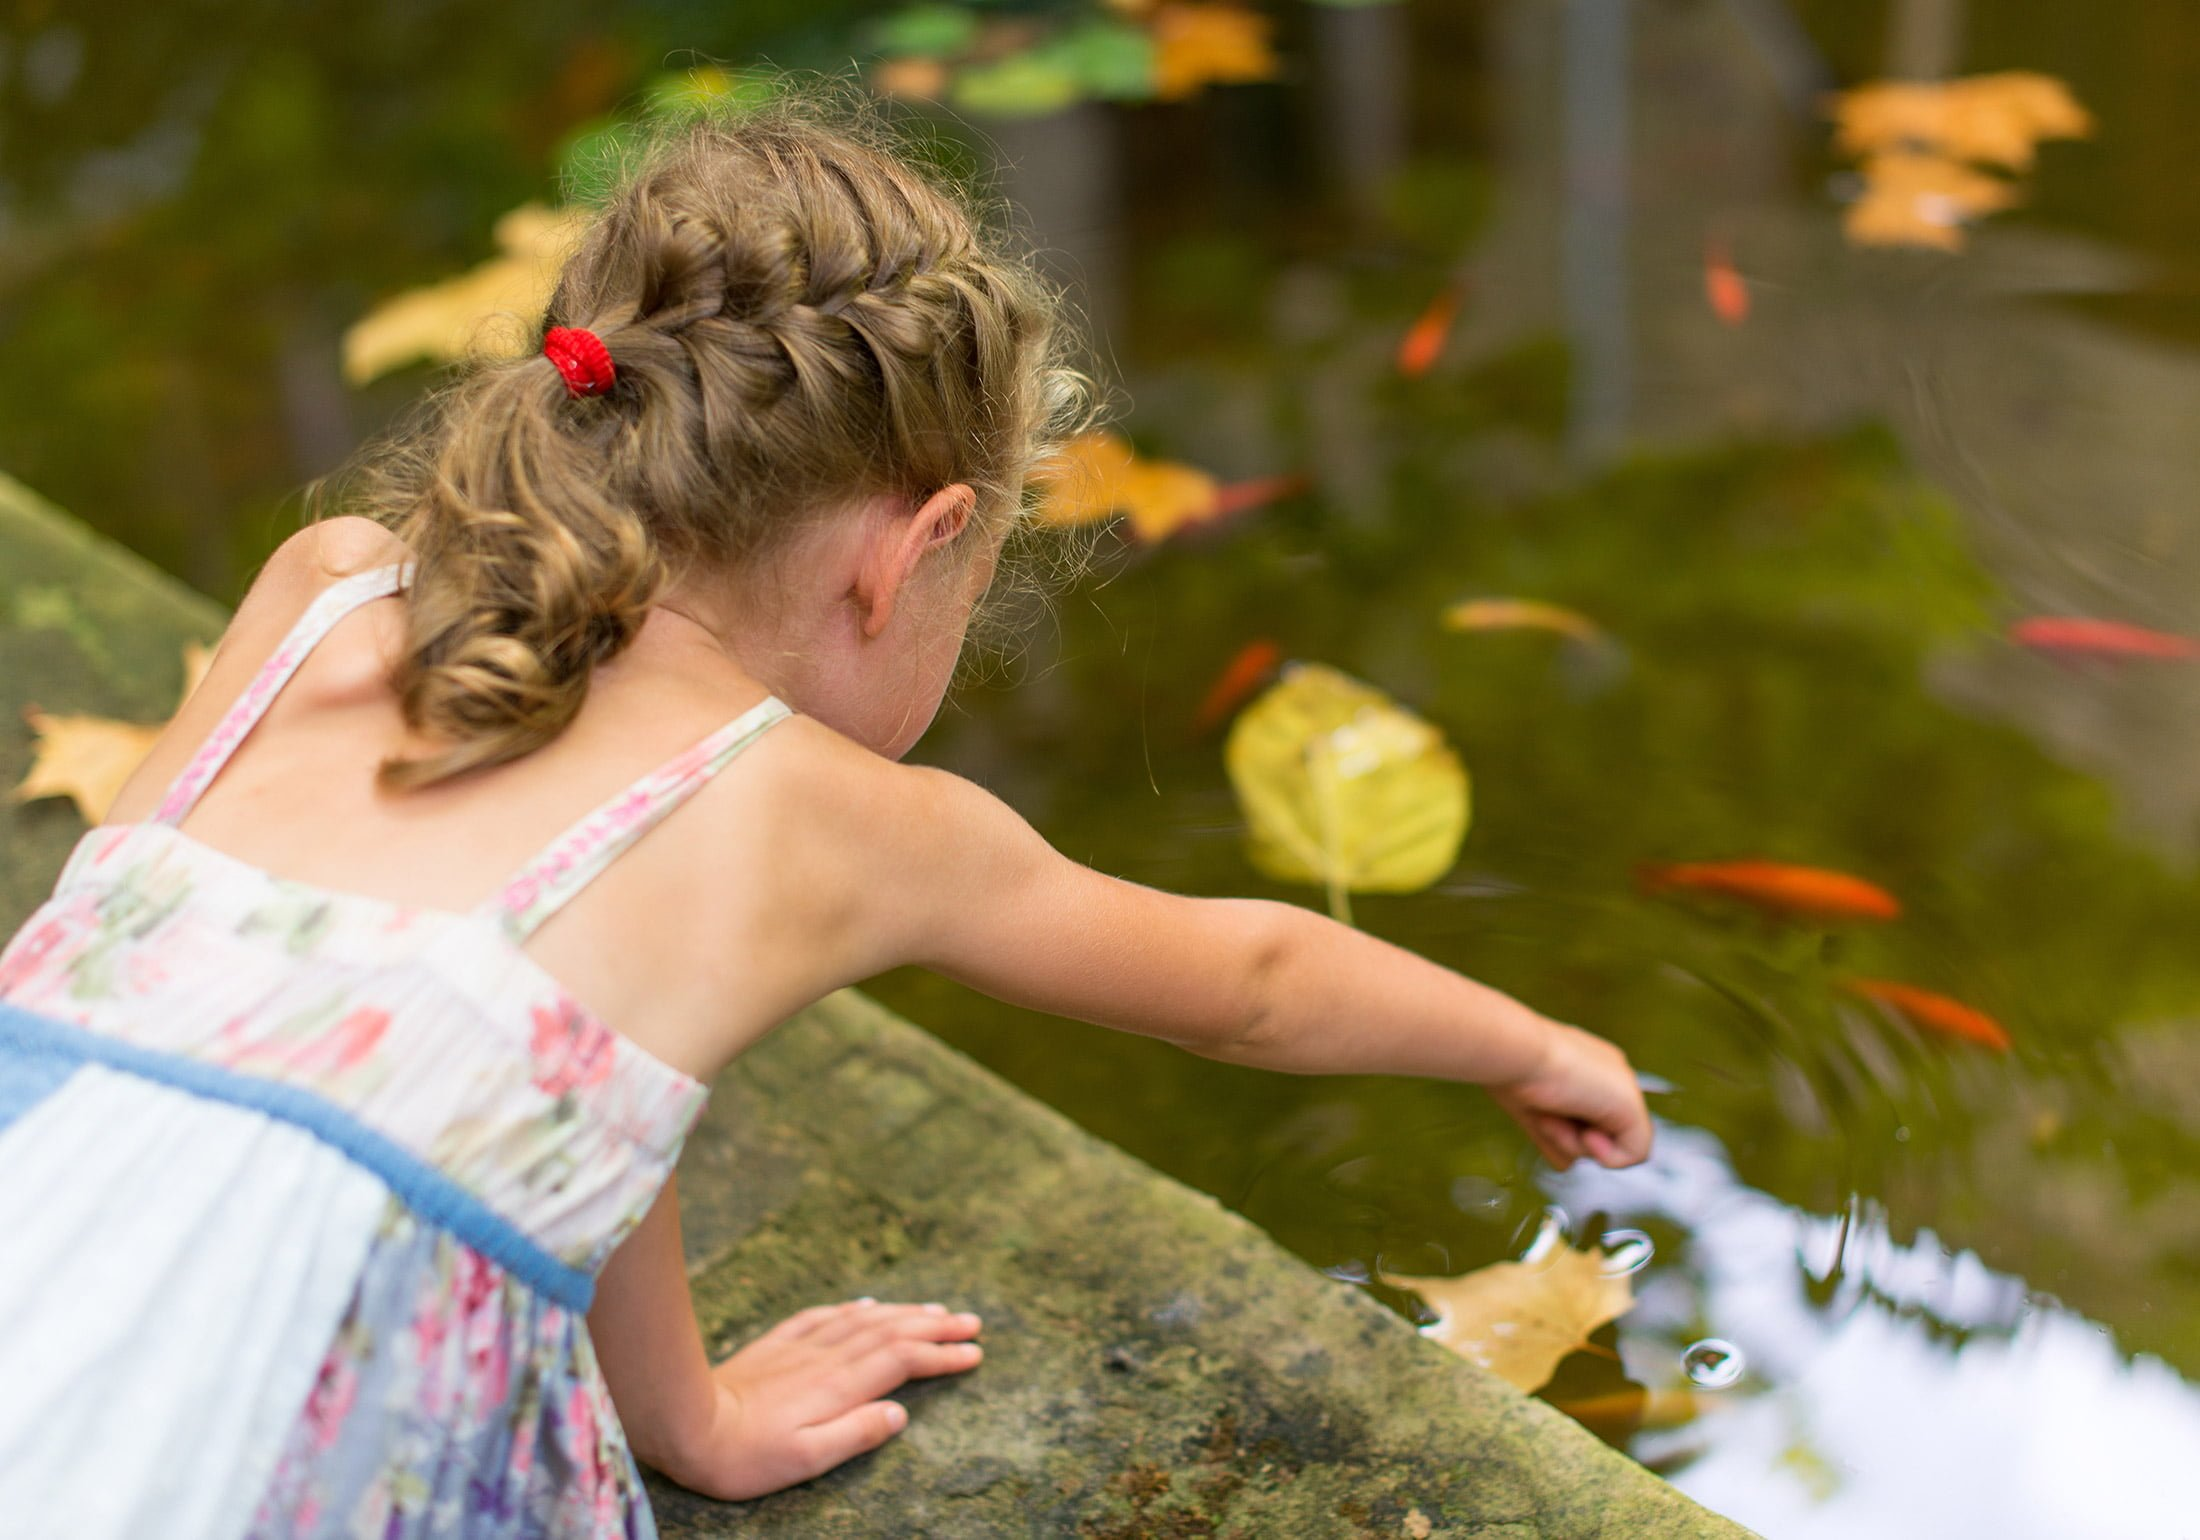 How to stay safe in your summer garden